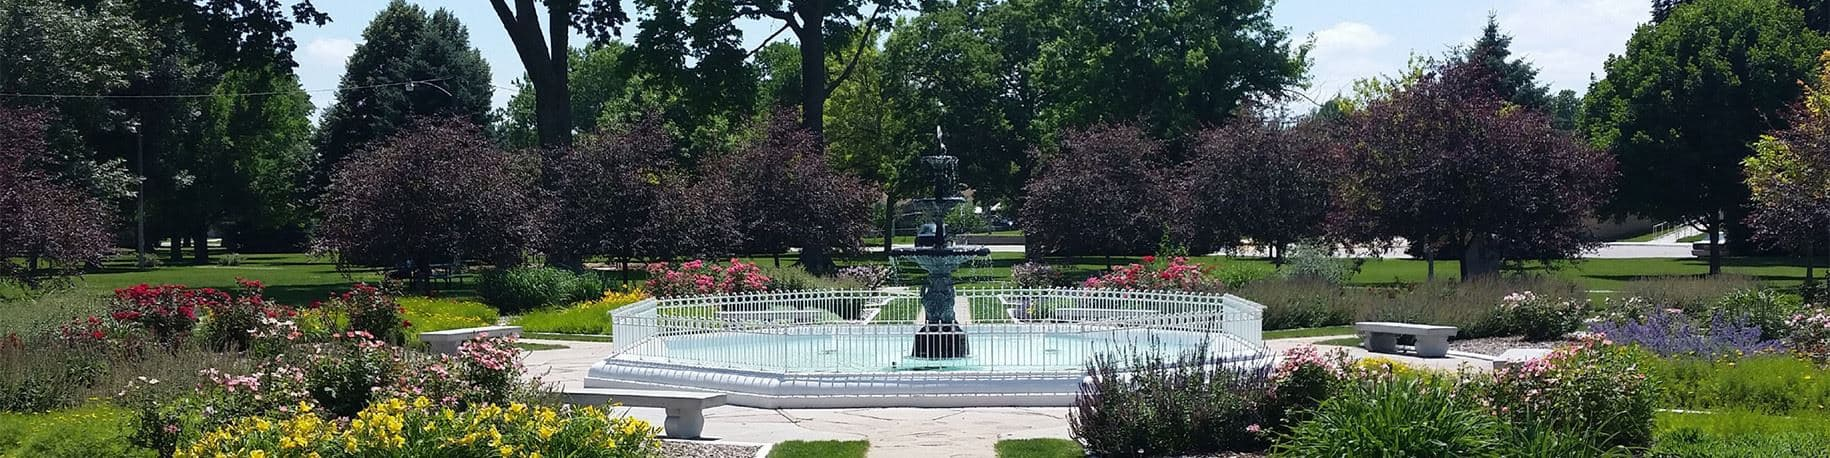 Fountain at Cottonmill Park in Kearney Nebraska